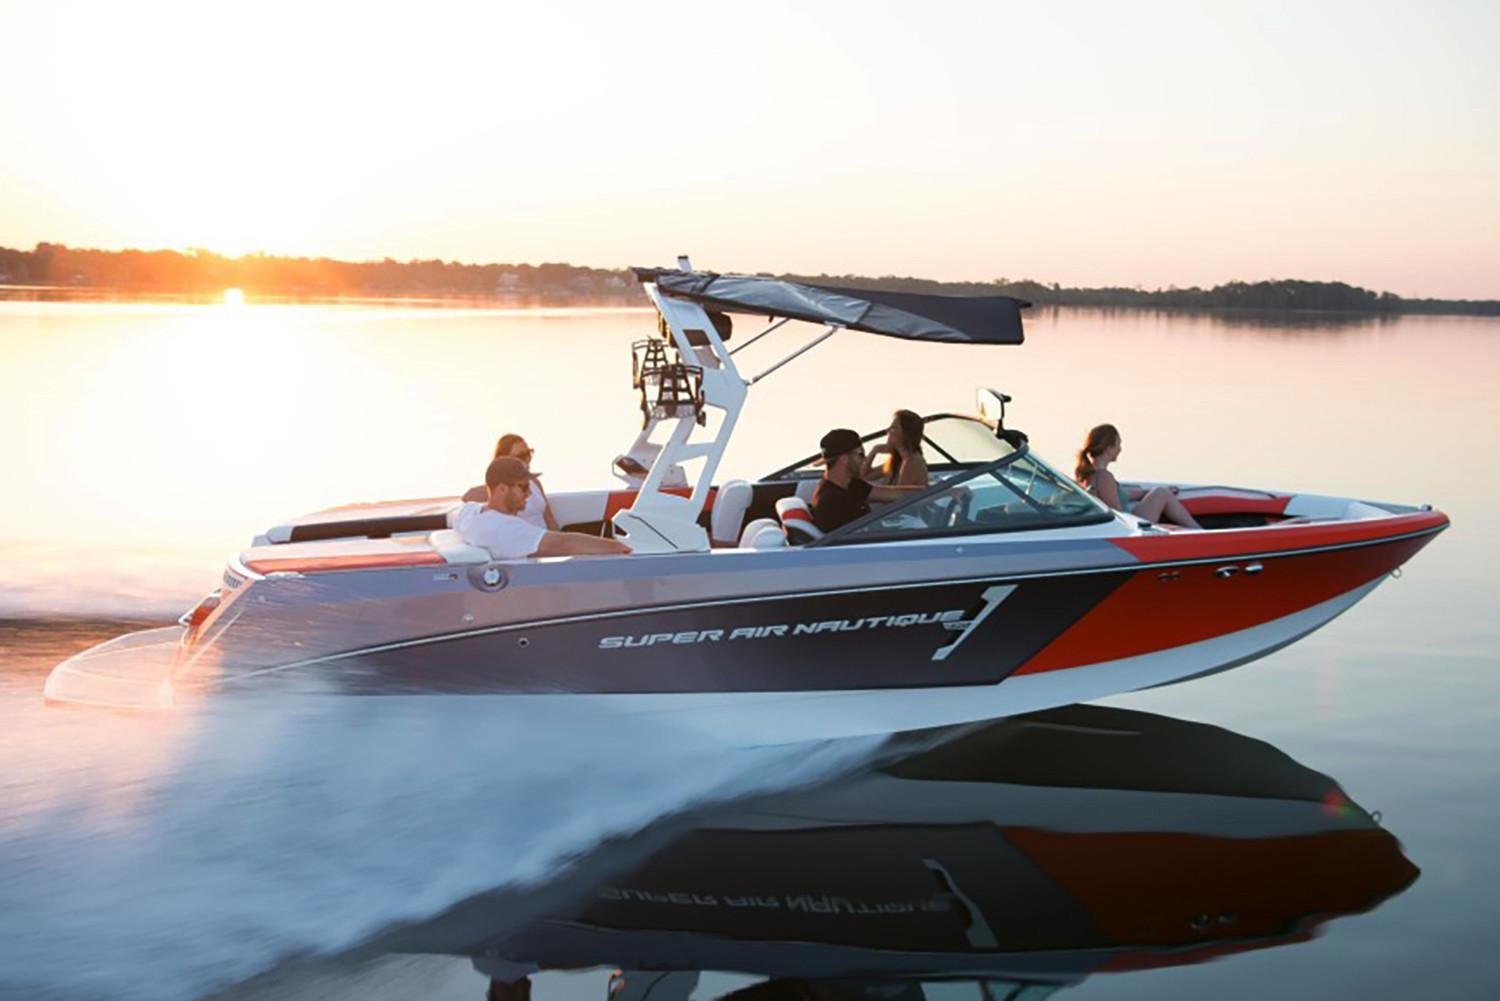 2019 Nautique Super Air Nautique 230 in Speculator, New York